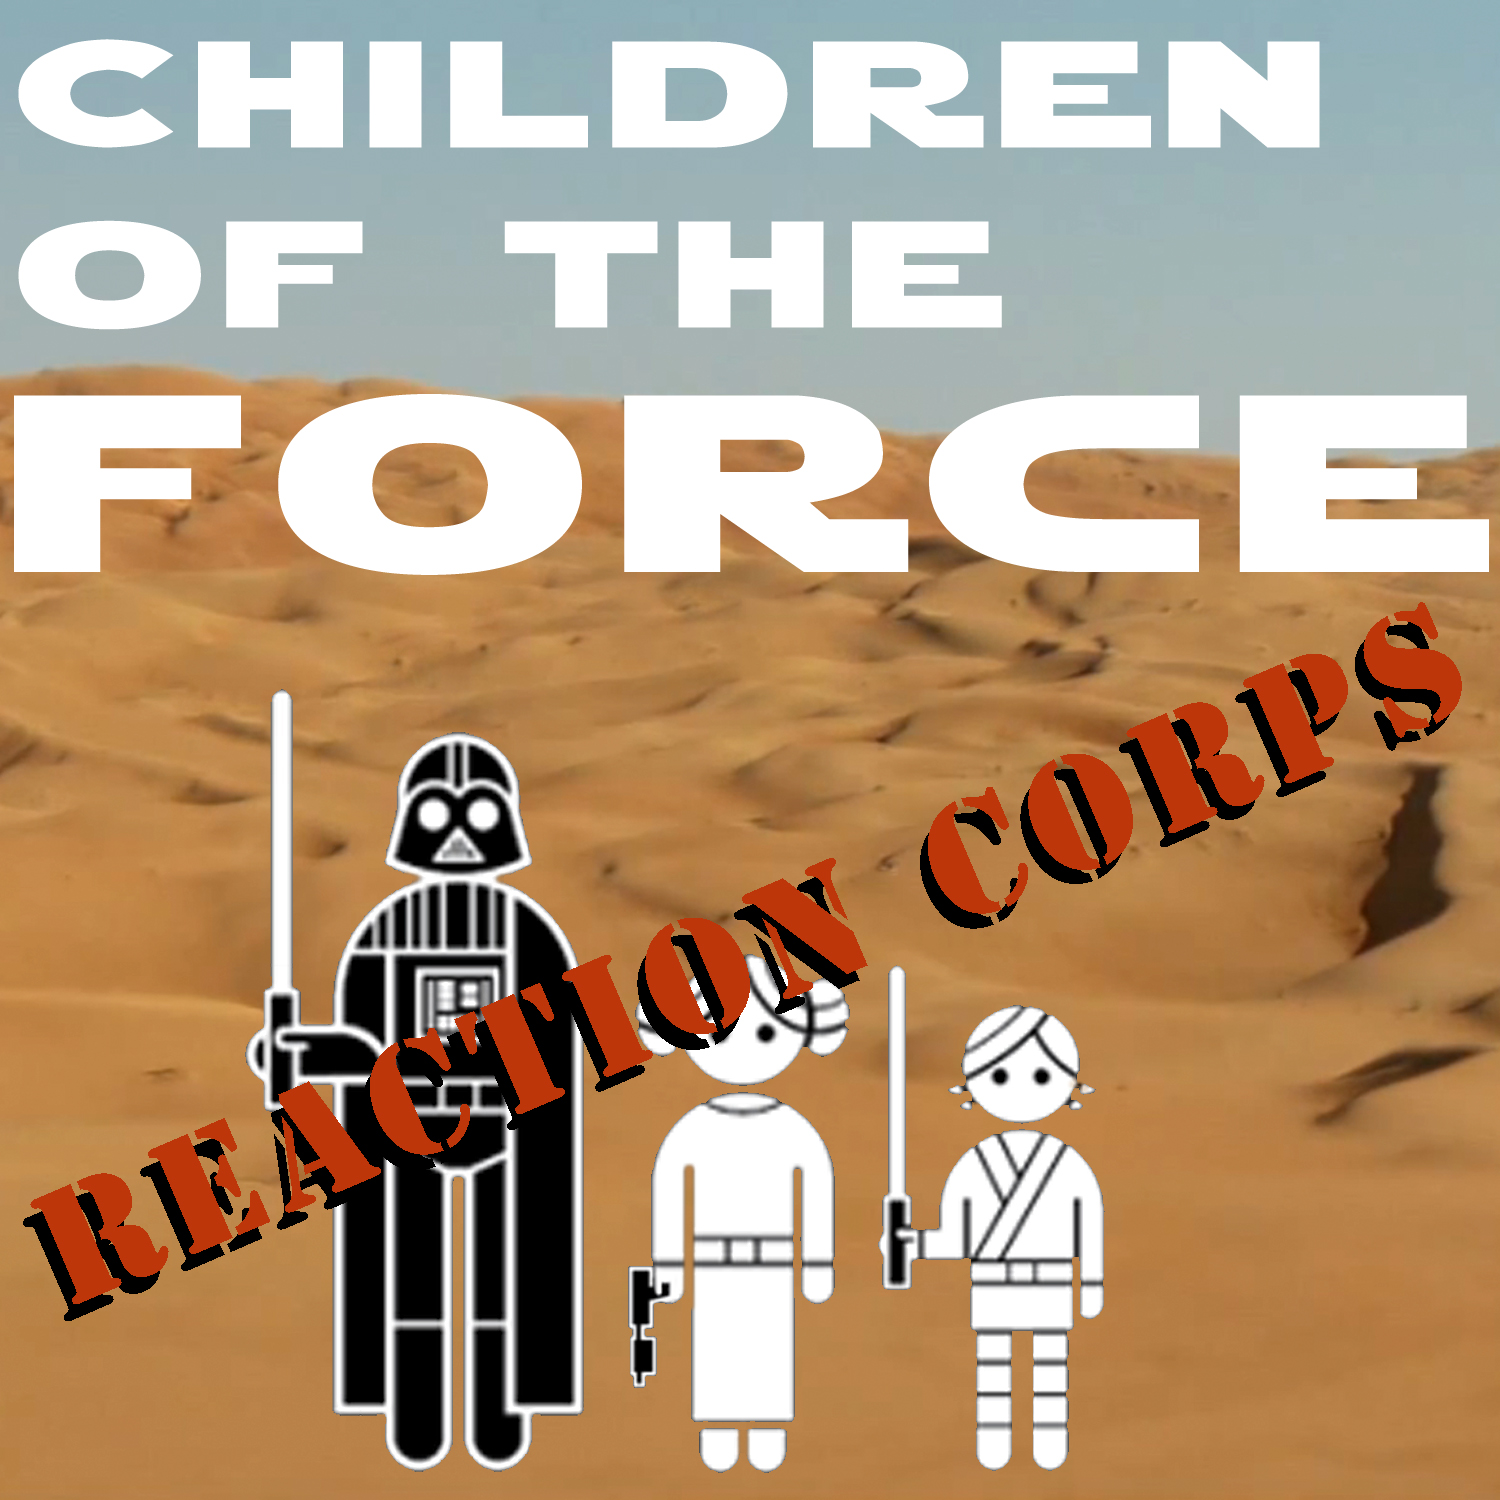 CotF Reaction Corps - Rebels: Twin Suns